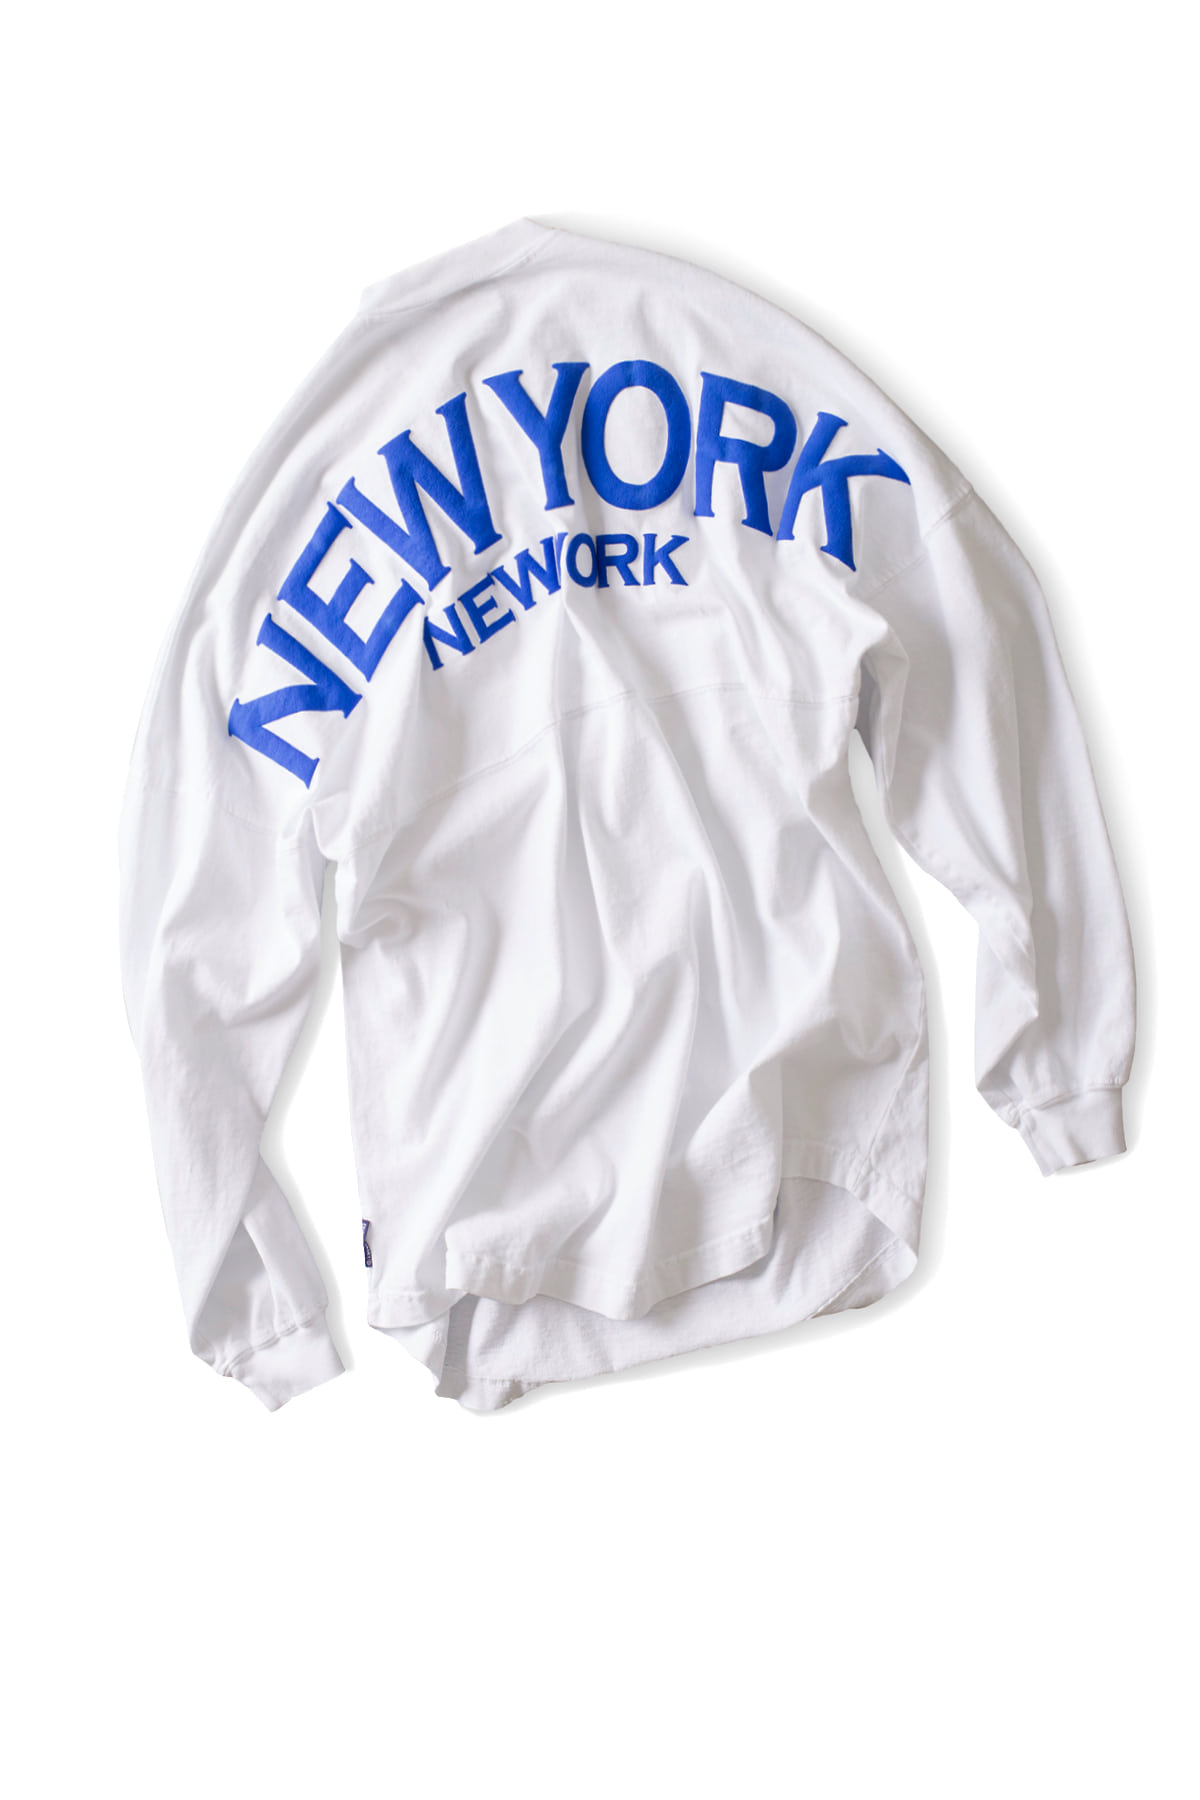 Spirit Jersey : New York L/S Tee (White)